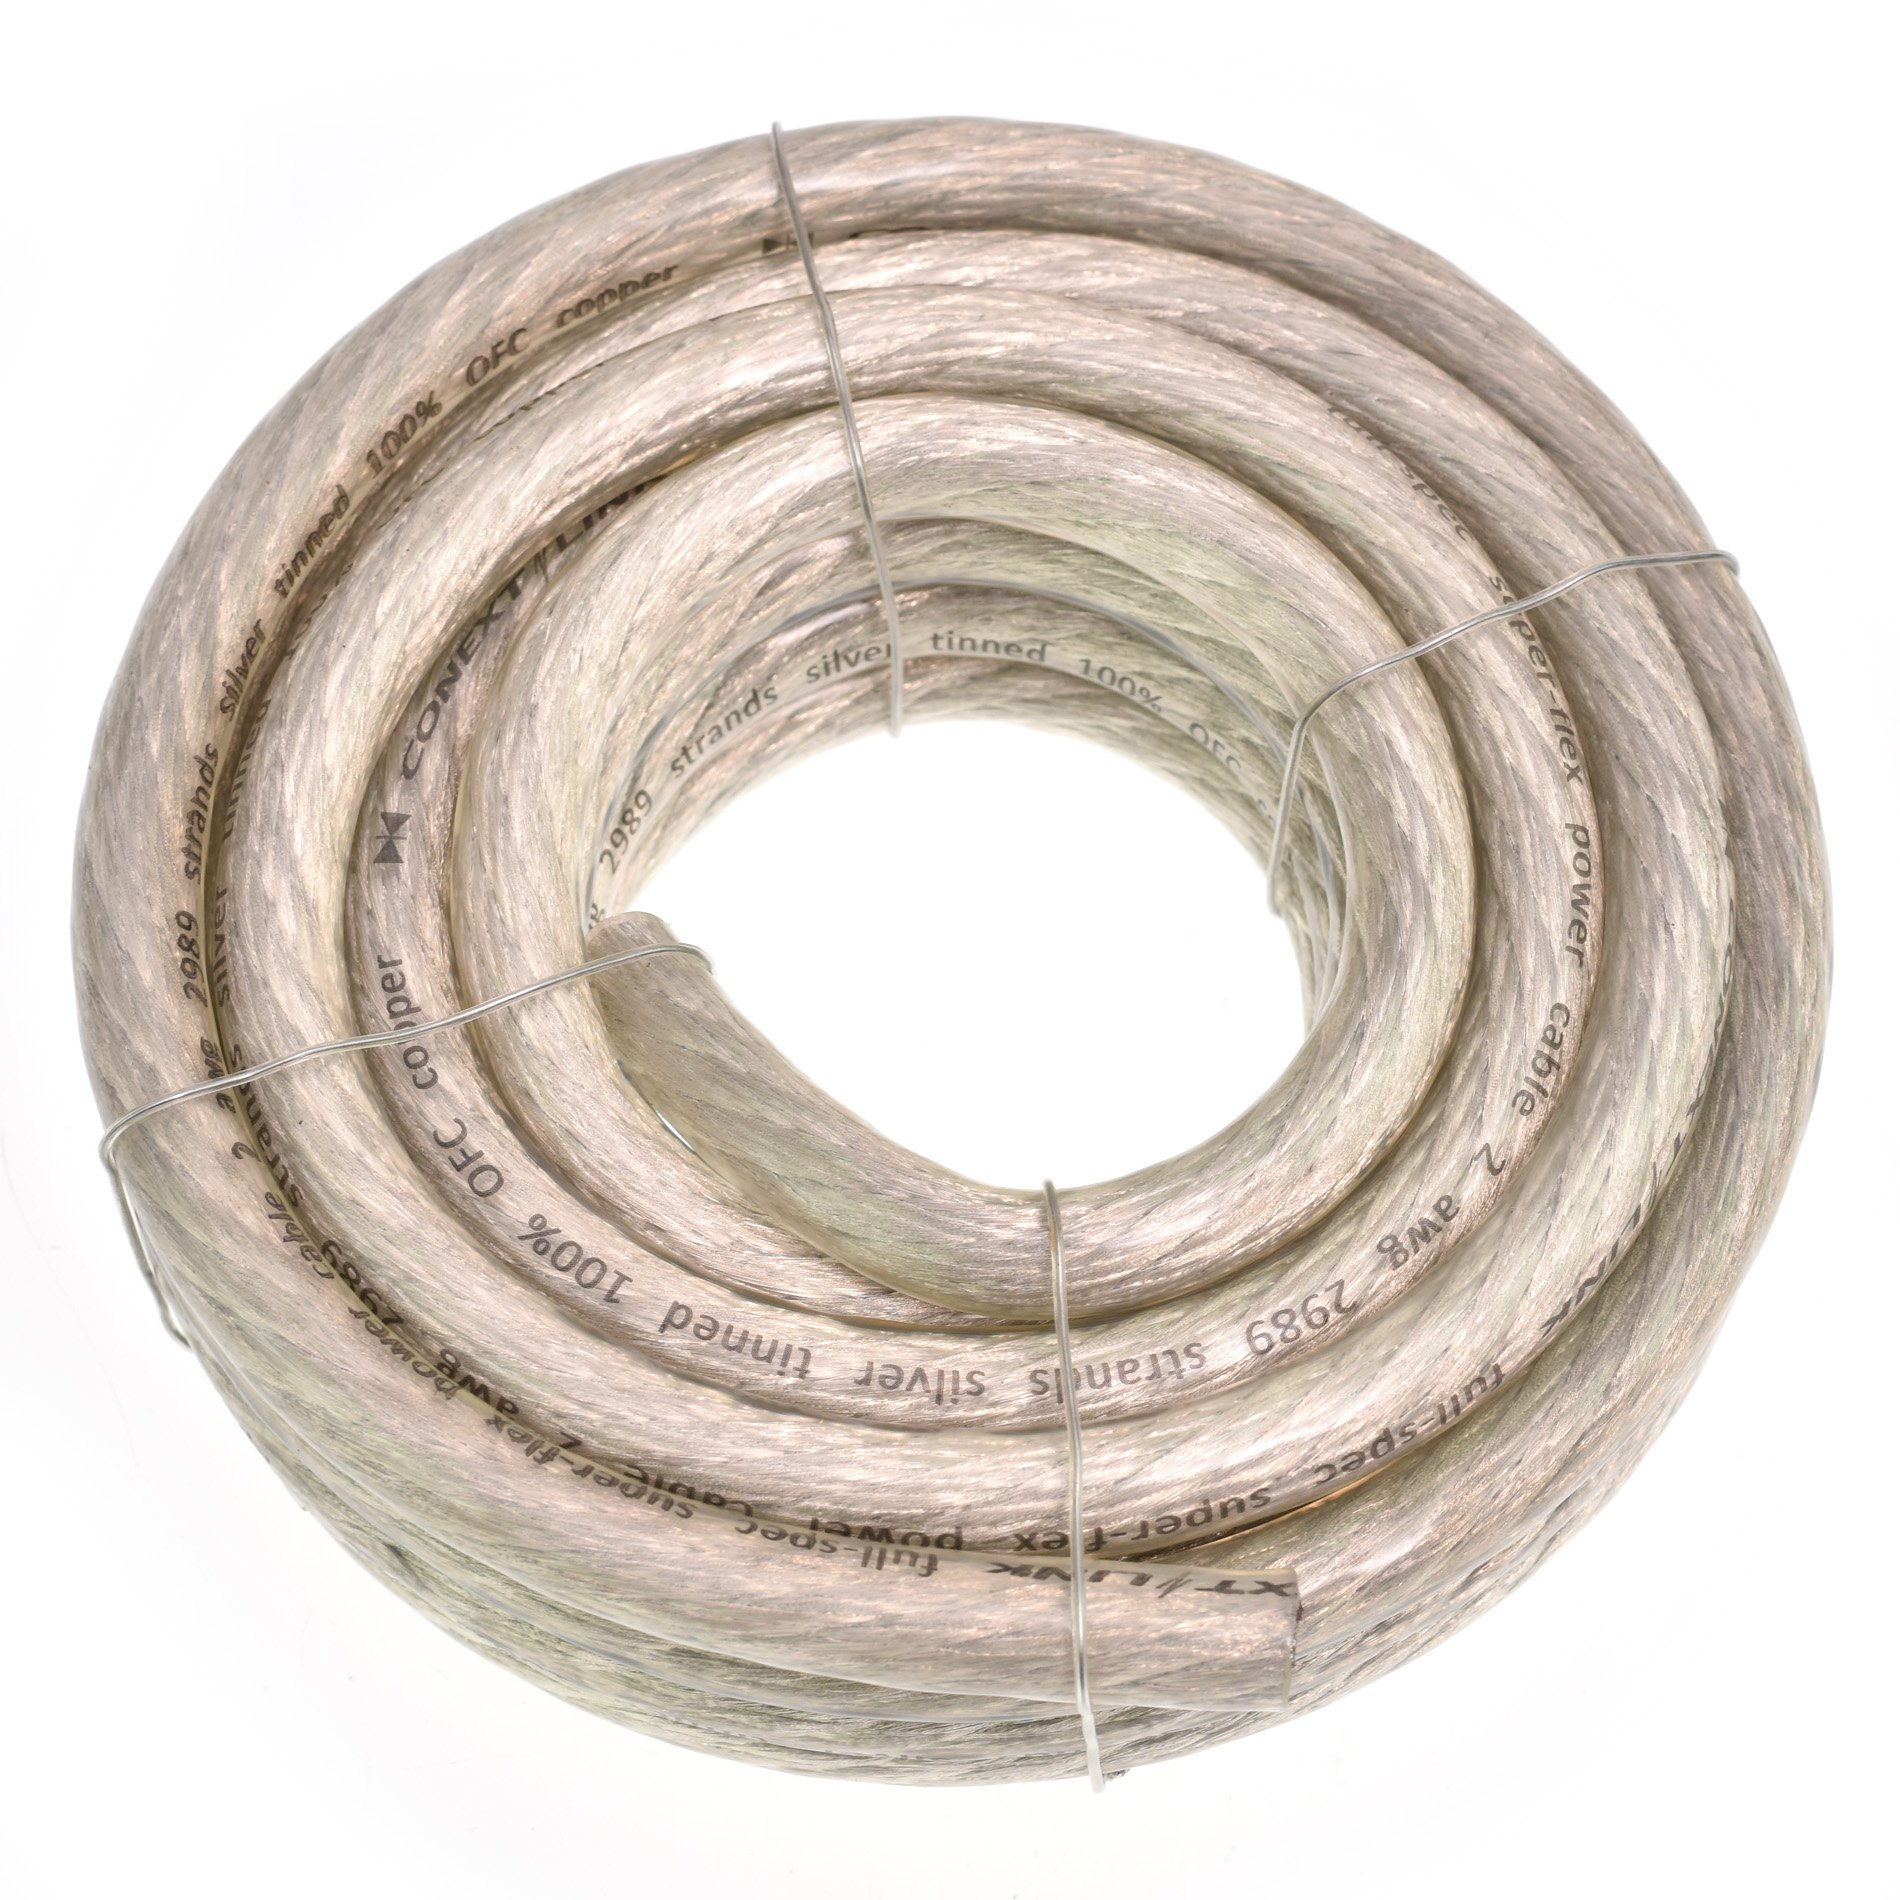 Conext Link 20 FT 2 AWG GA Full Gauge Battery Power Cable Ground Wire Clear Silver OFC Copper